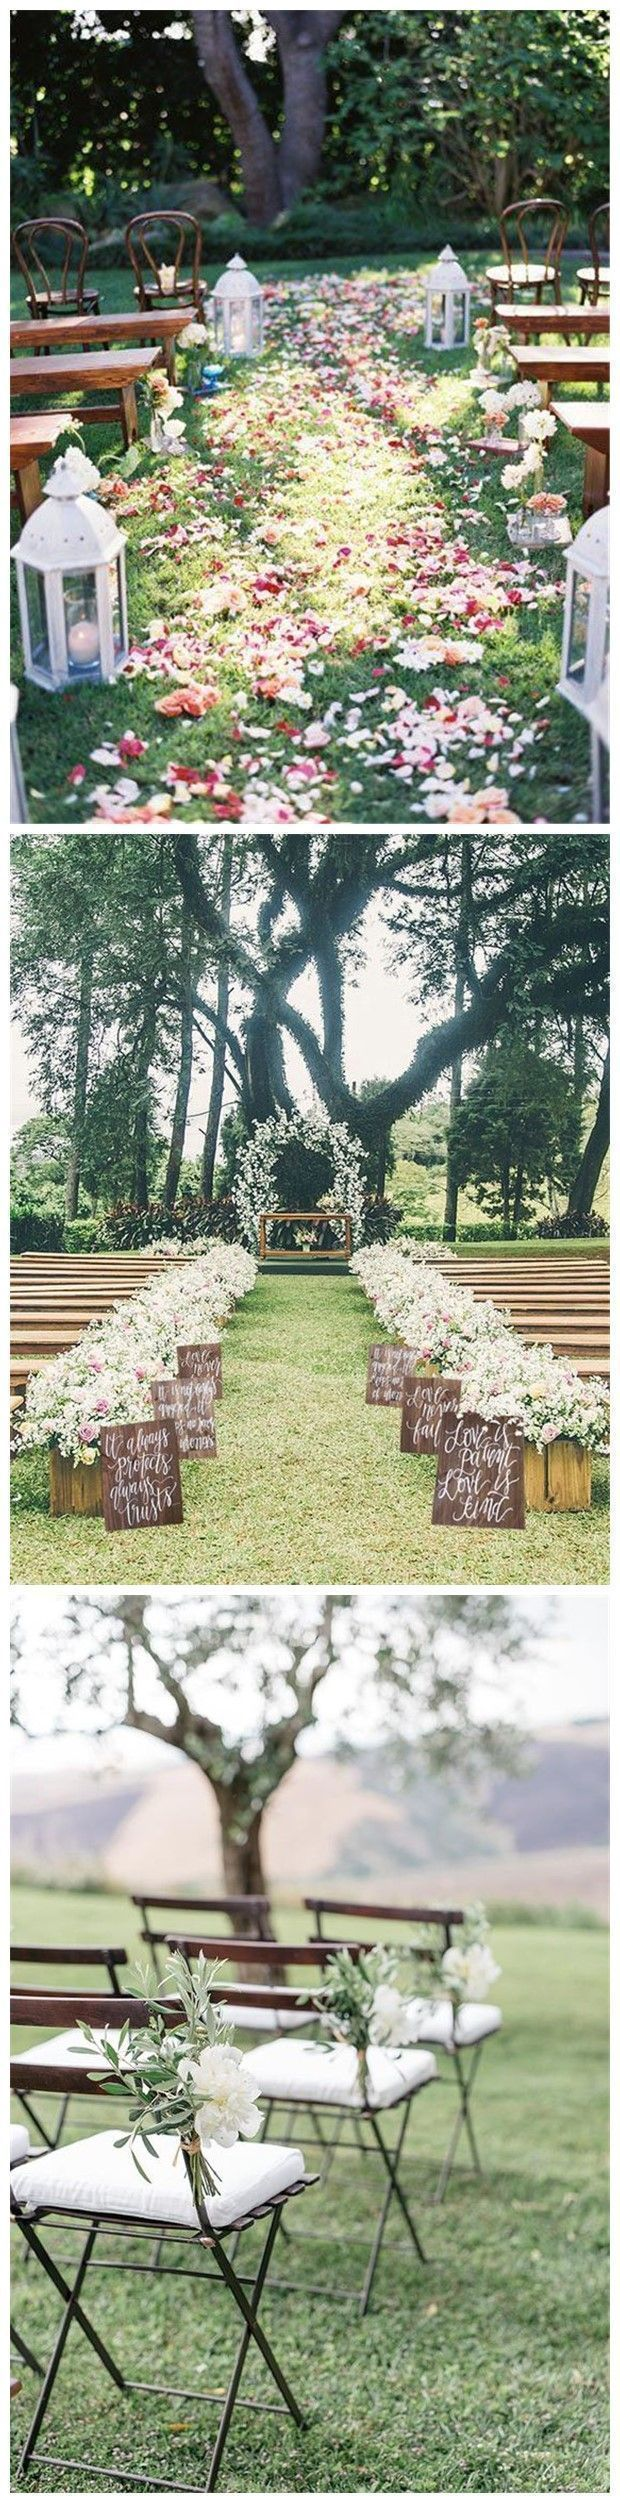 decorating ideas for outside wedding ceremony%0A Country Weddings       Rustic Outdoor Wedding Ceremony Decorations Ideas         See more